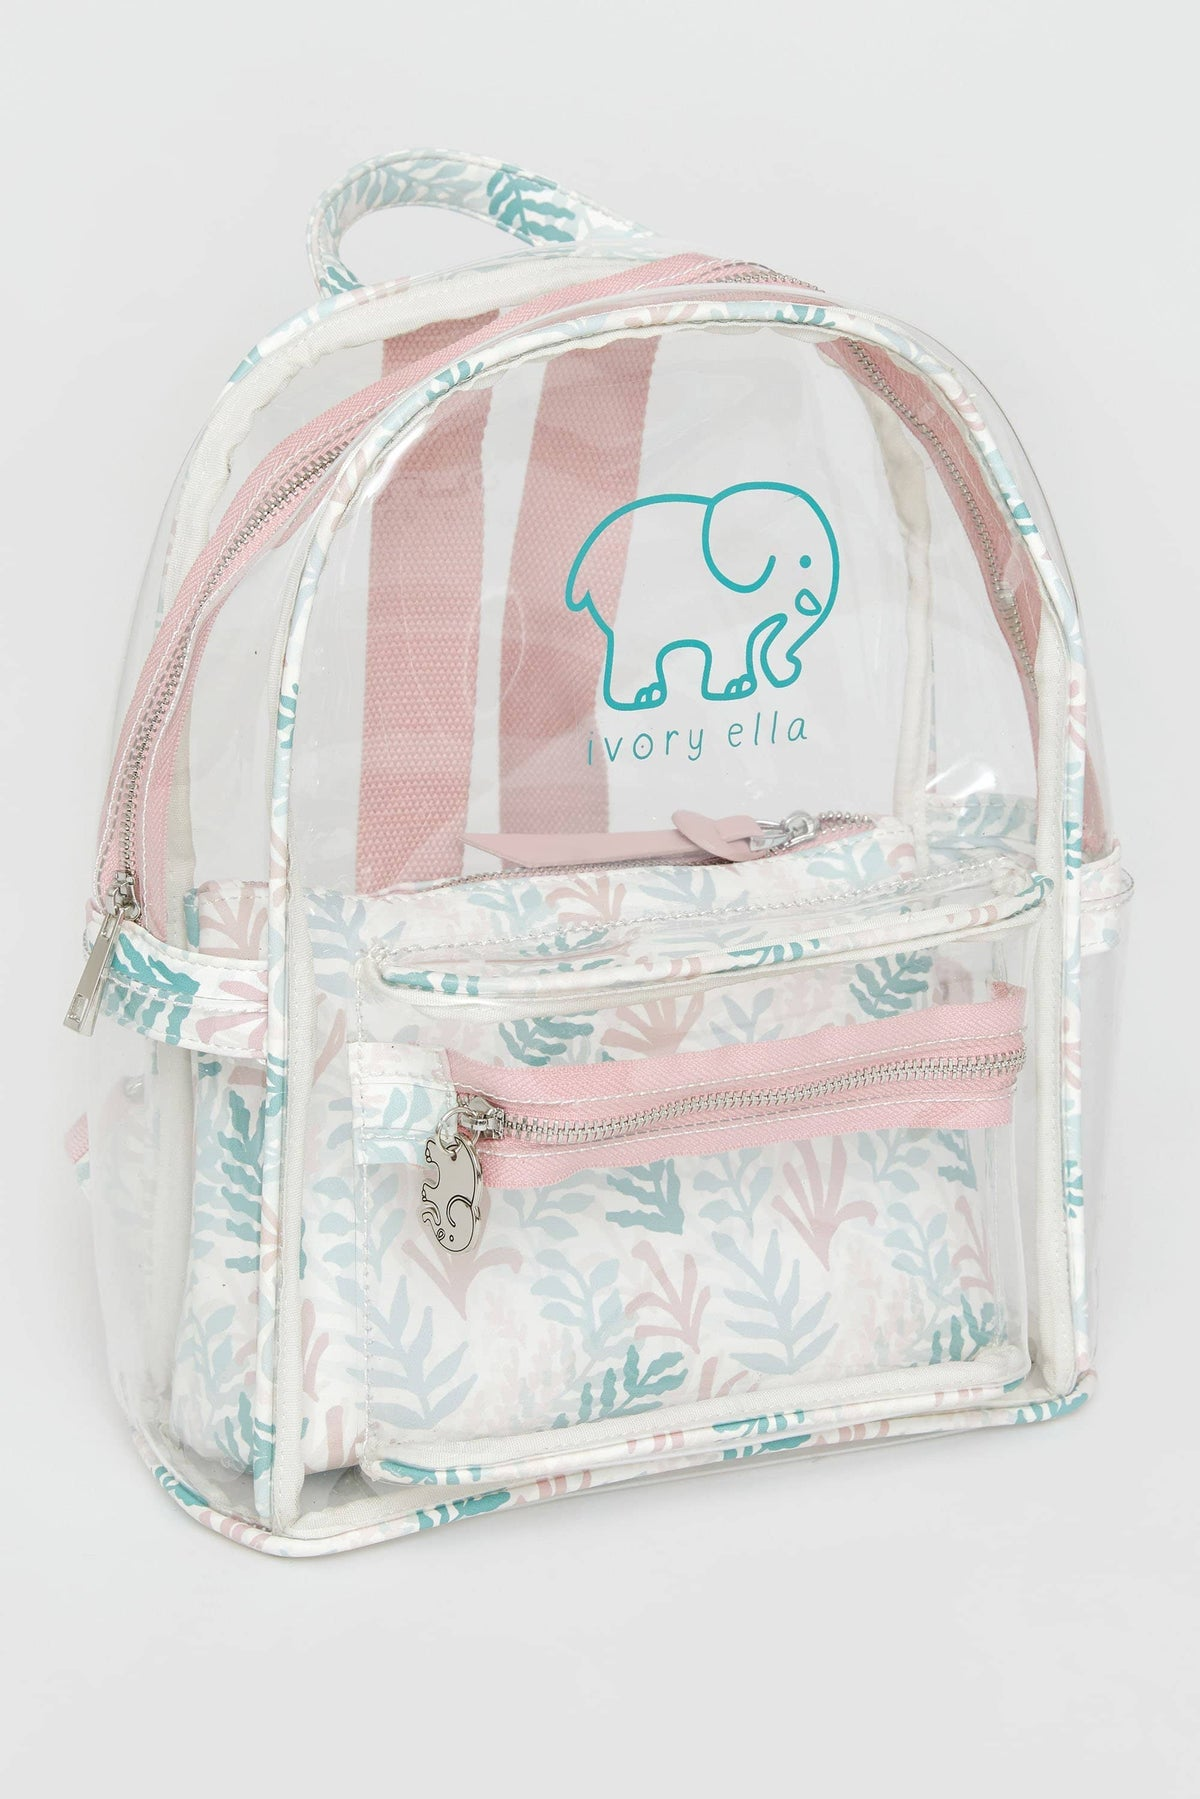 Ivory Ella Accessories Mini Clear Backpack